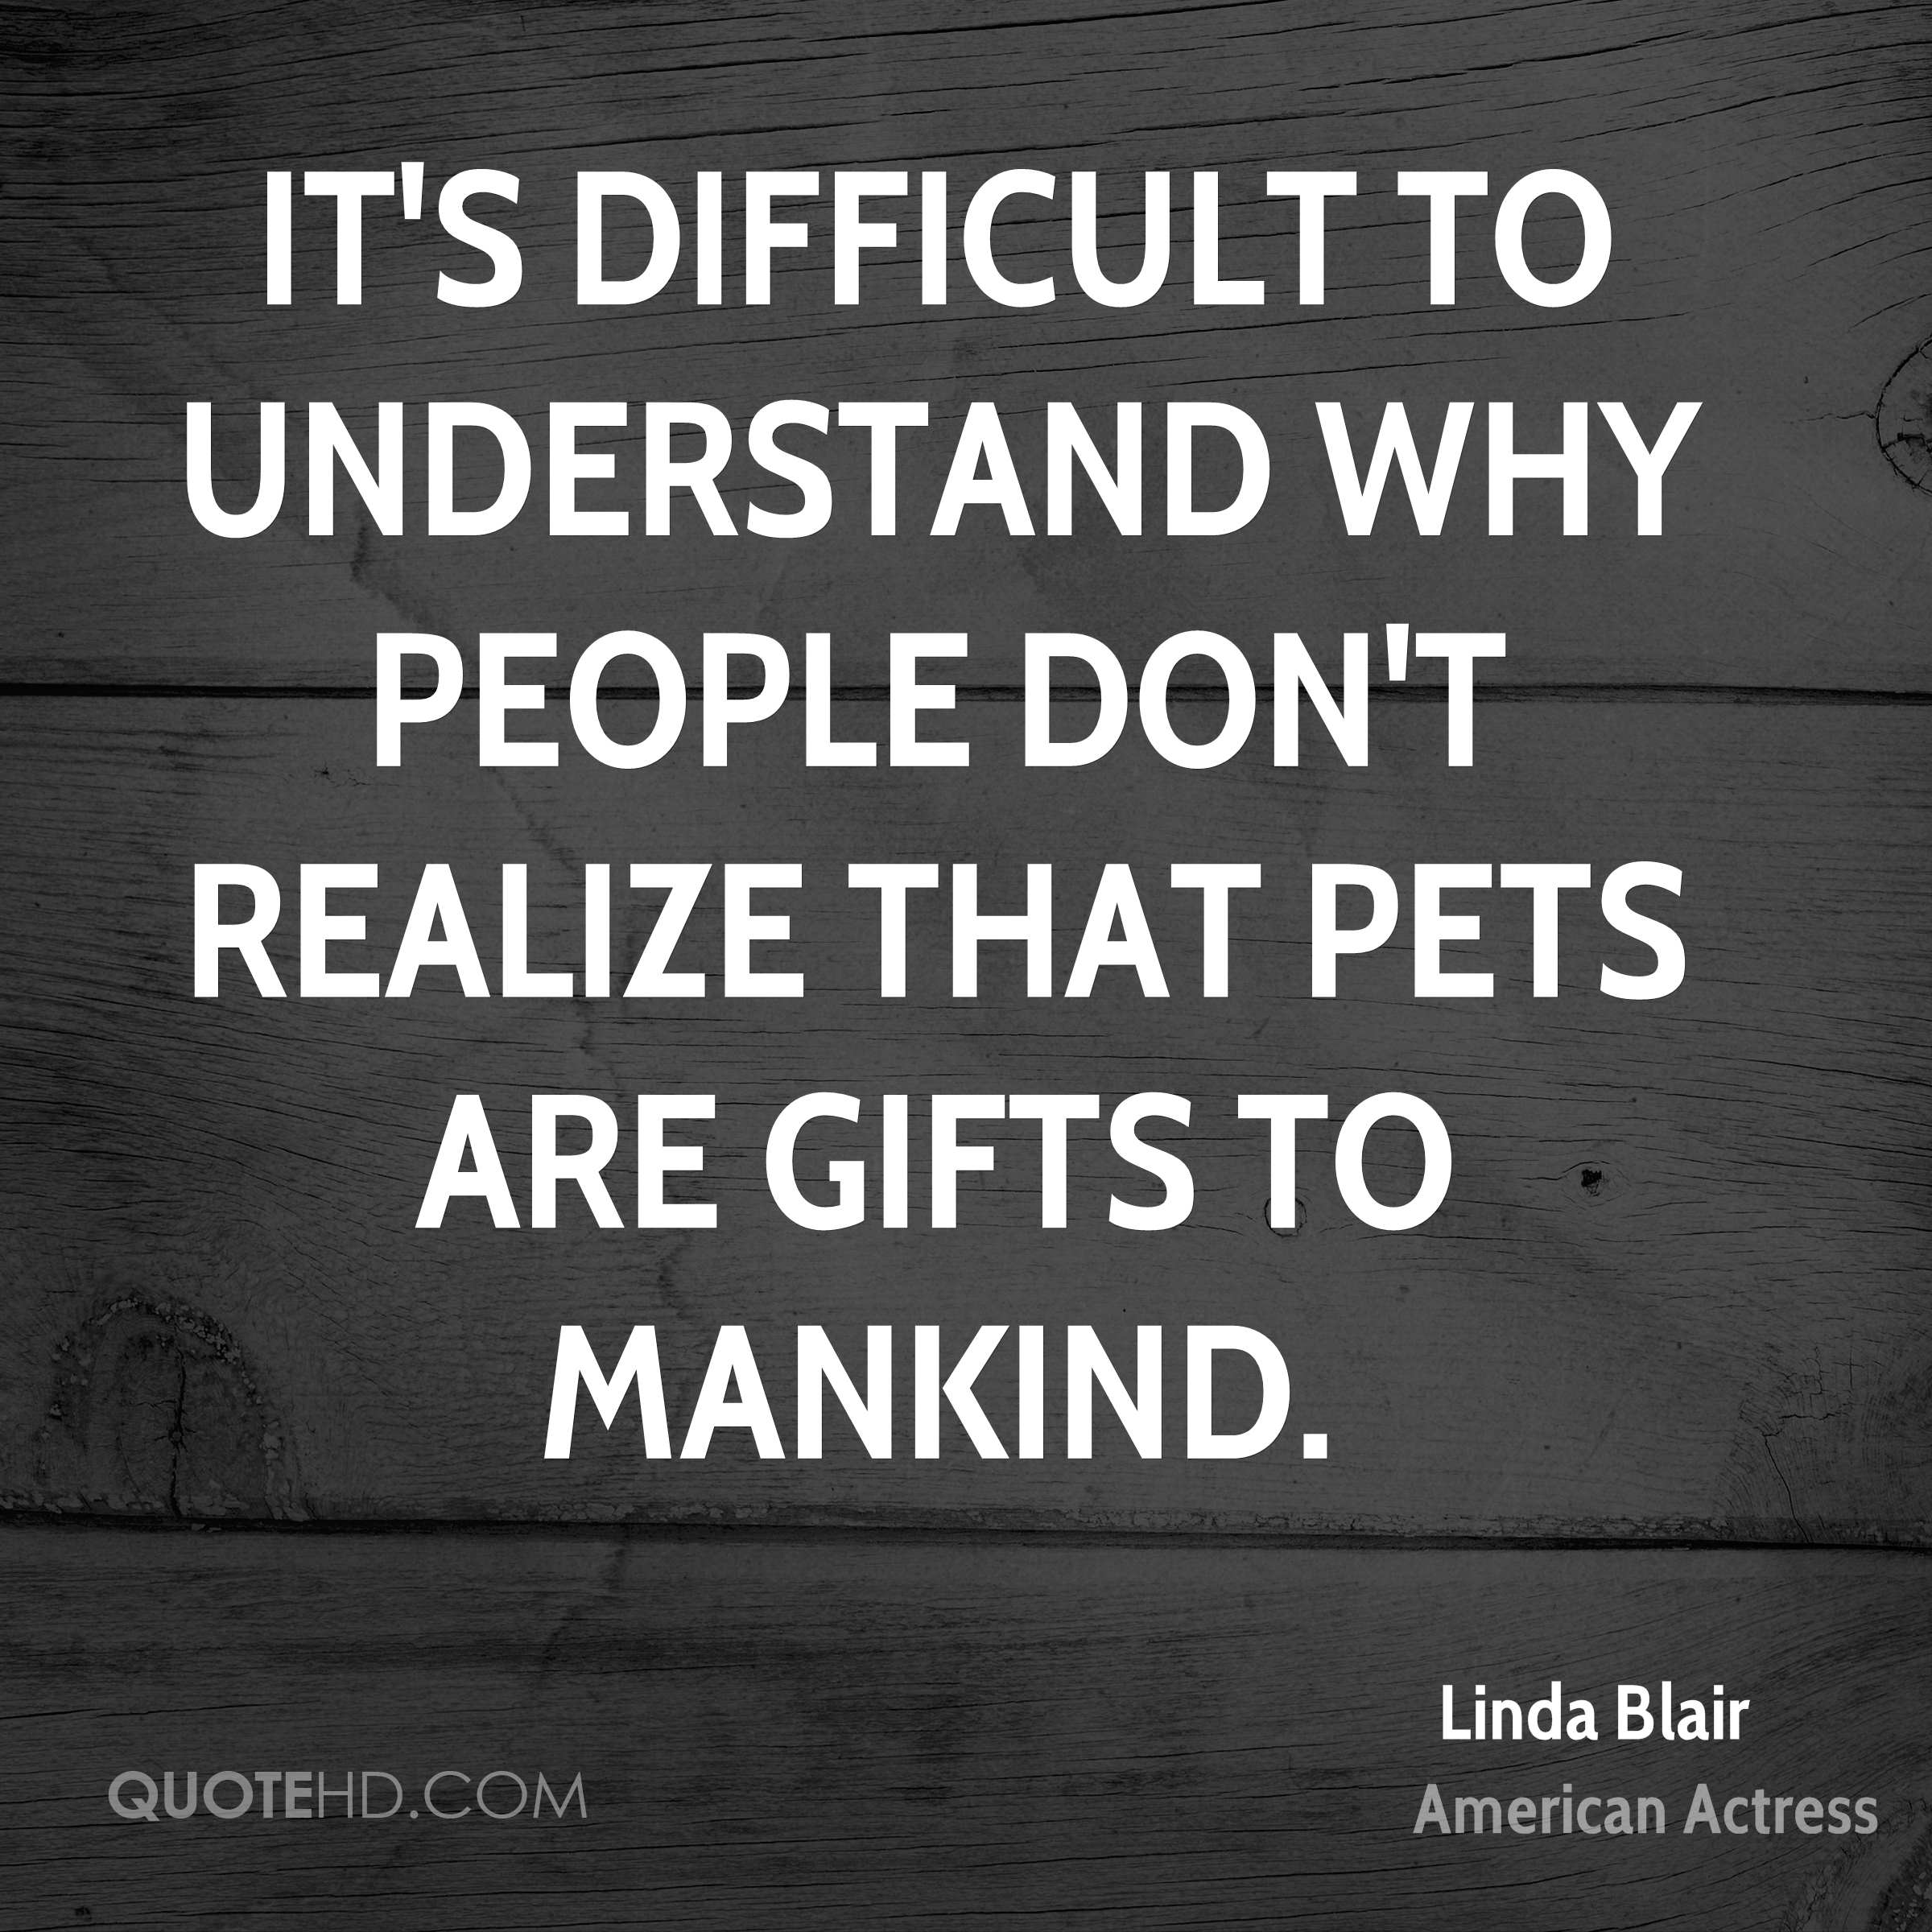 It's difficult to understand why people don't realize that pets are gifts to mankind.